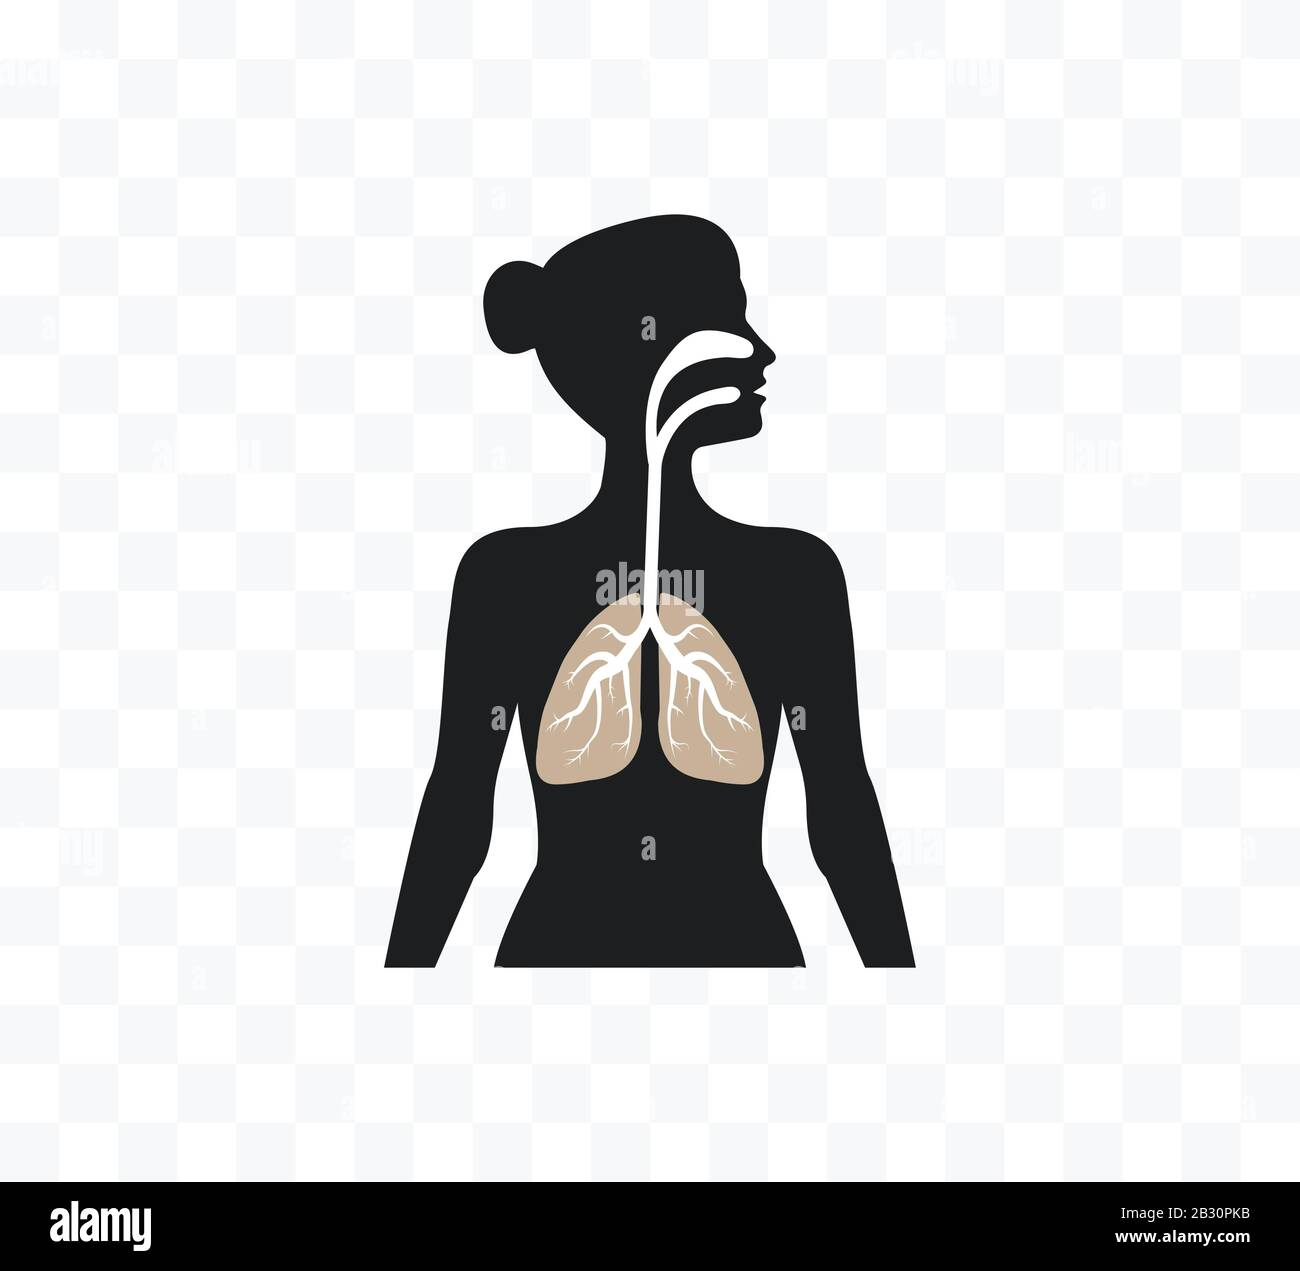 Illustration Body Woman Biology High Resolution Stock Photography And Images Alamy